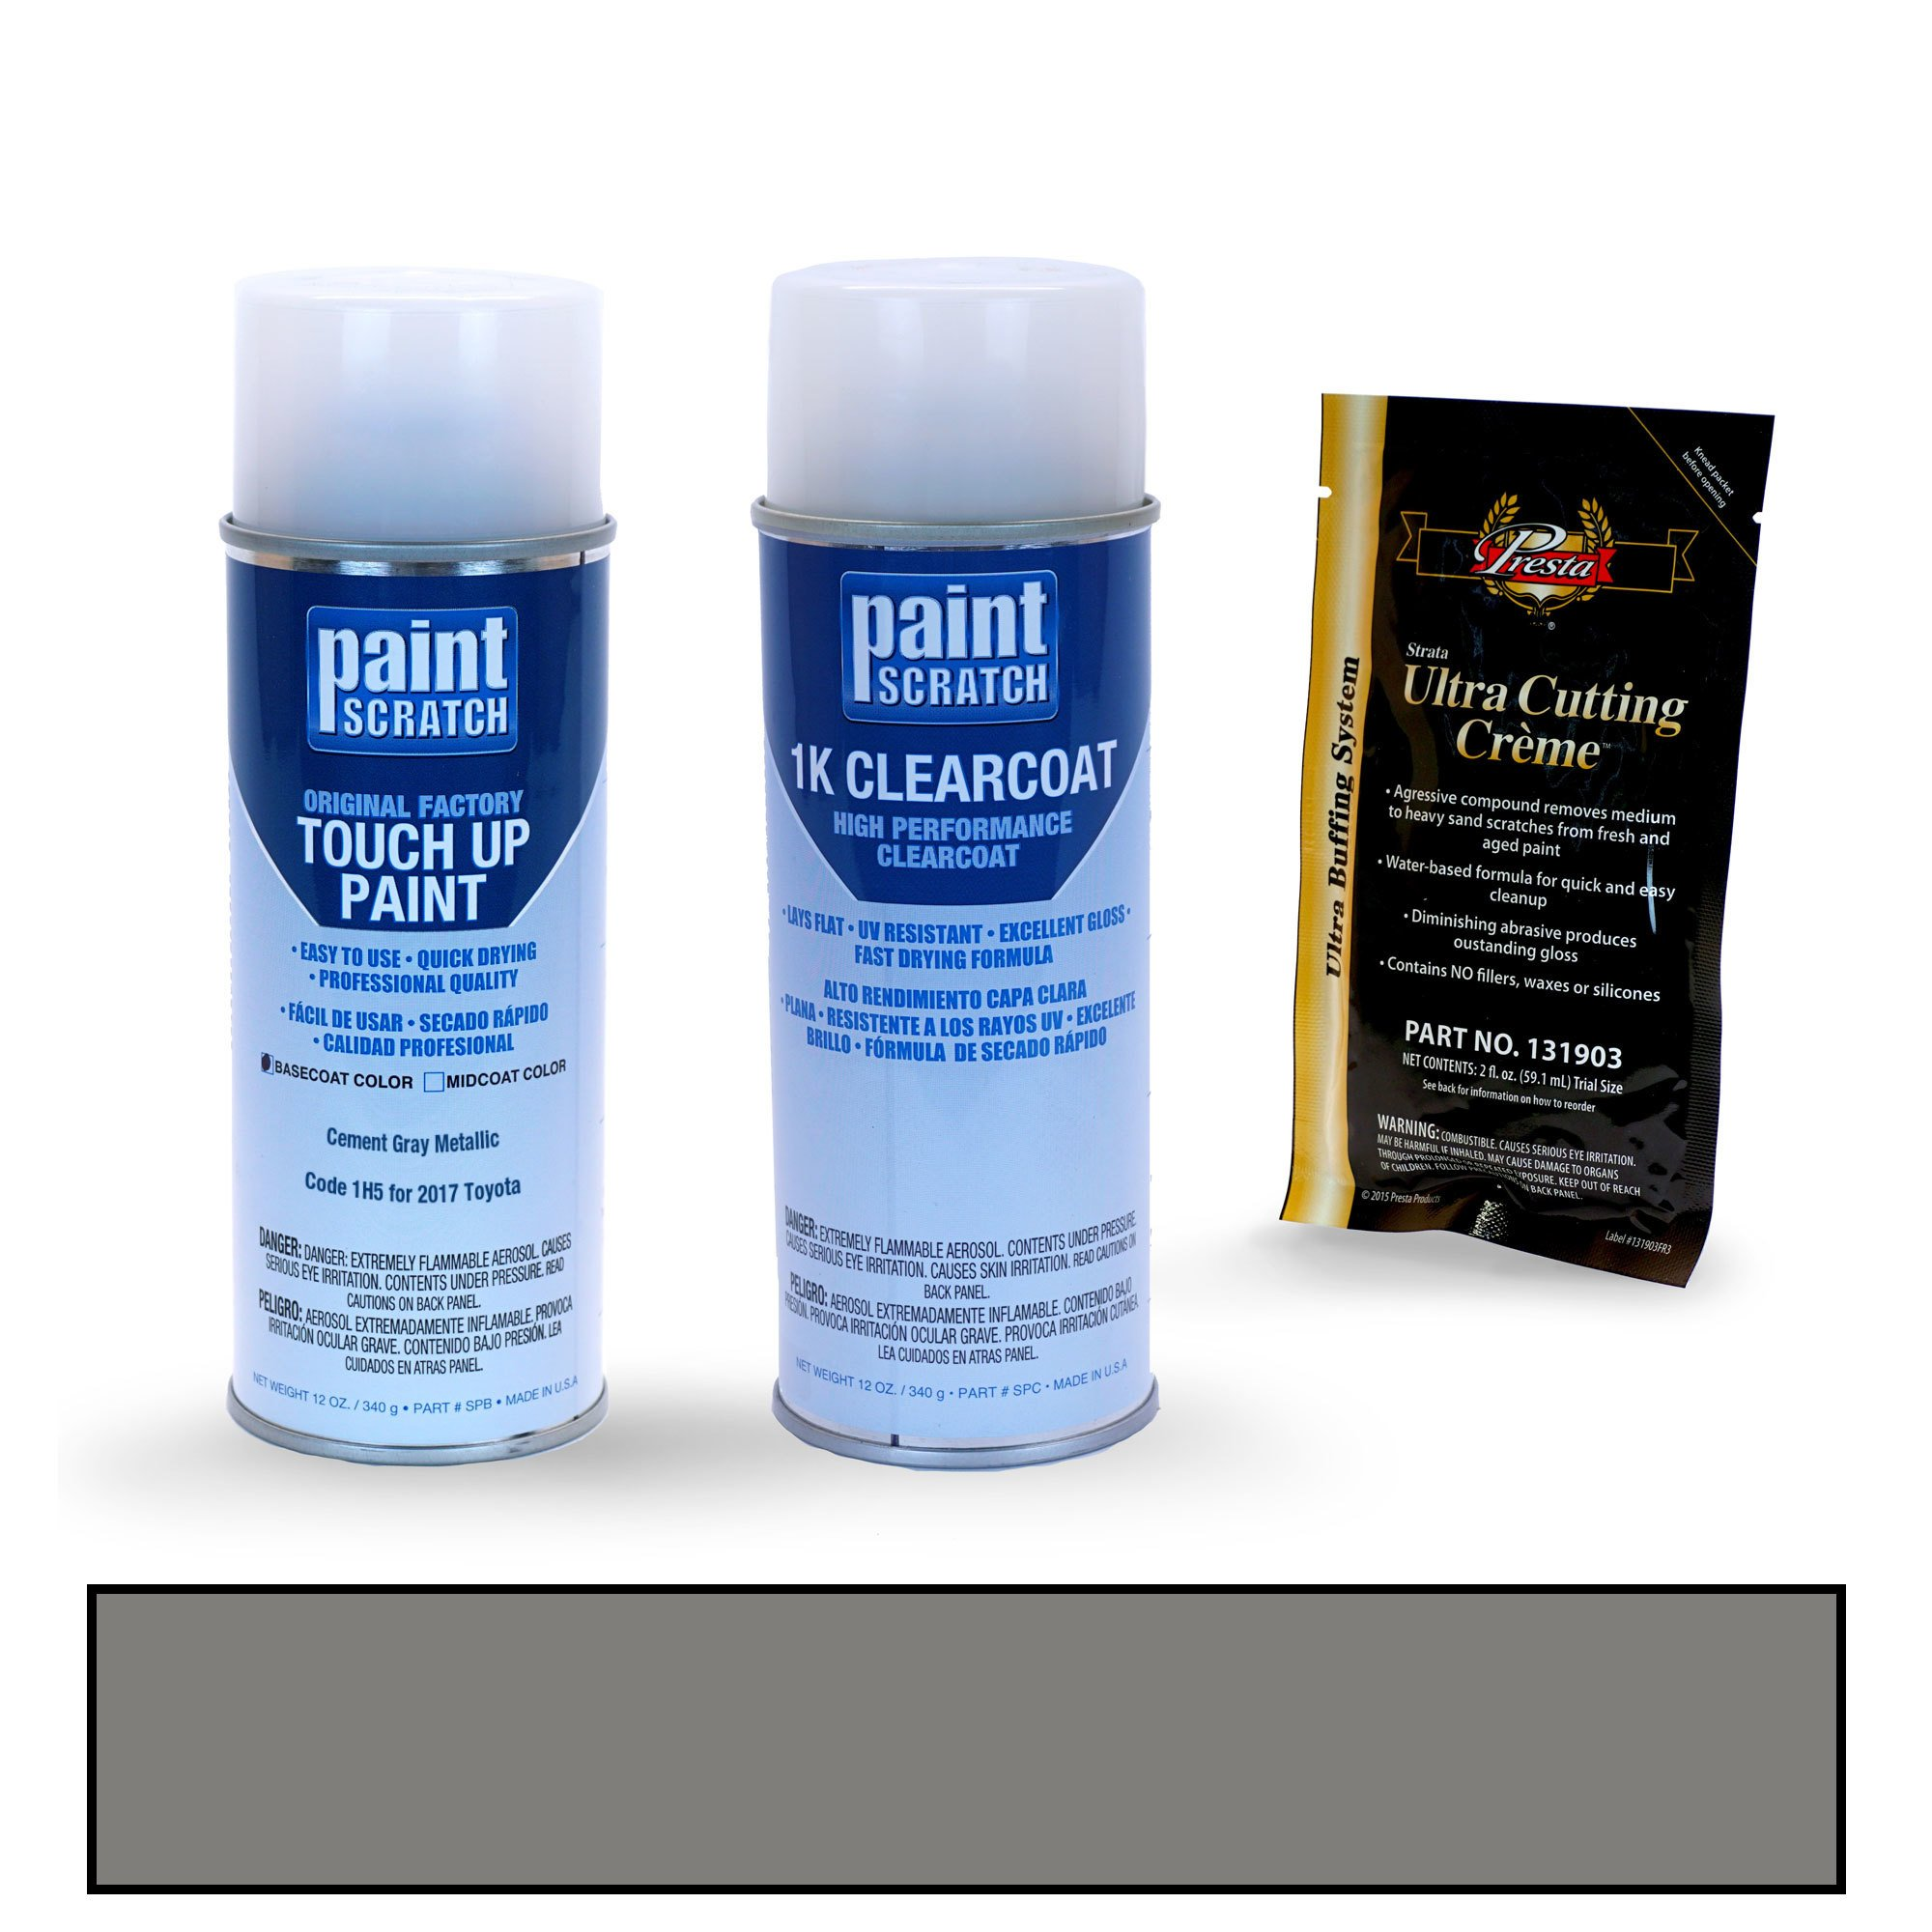 PAINTSCRATCH Cement Gray Metallic 1H5 for 2017 Toyota Tundra - Touch Up Paint Spray Can Kit - Original Factory OEM Automotive Paint - Color Match Guaranteed